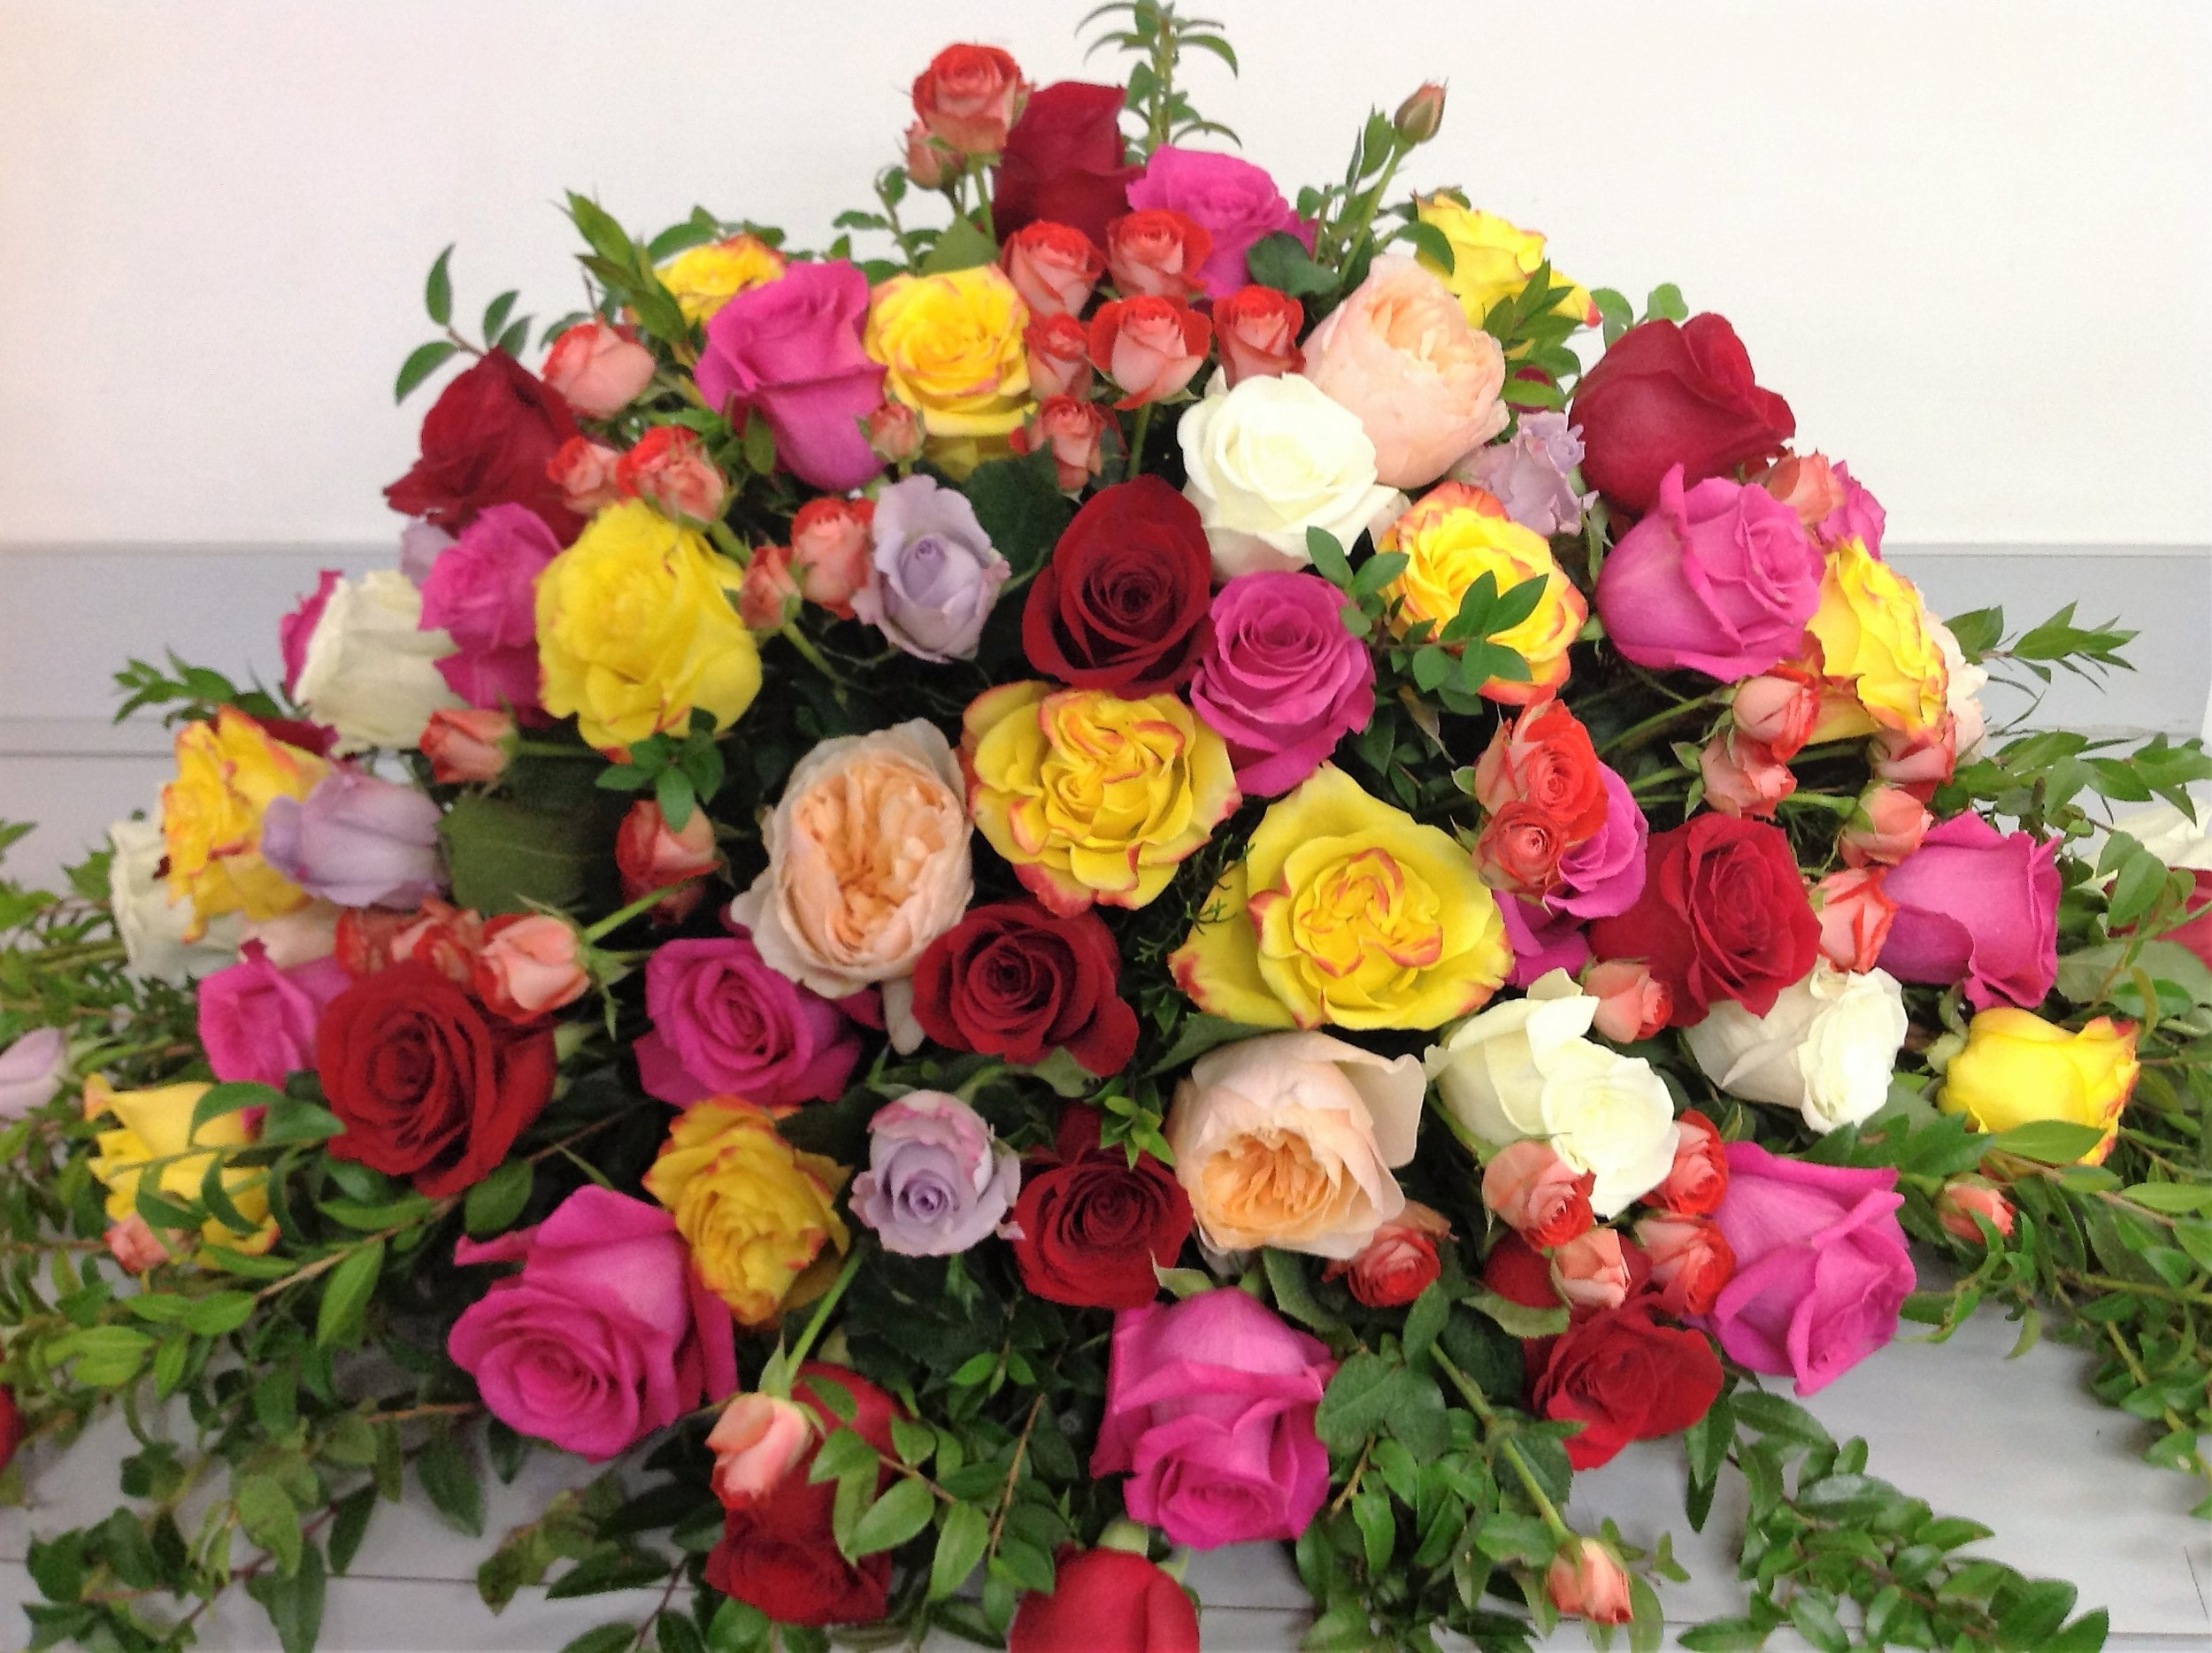 #7 Roses of all colors rounded formal casket spray